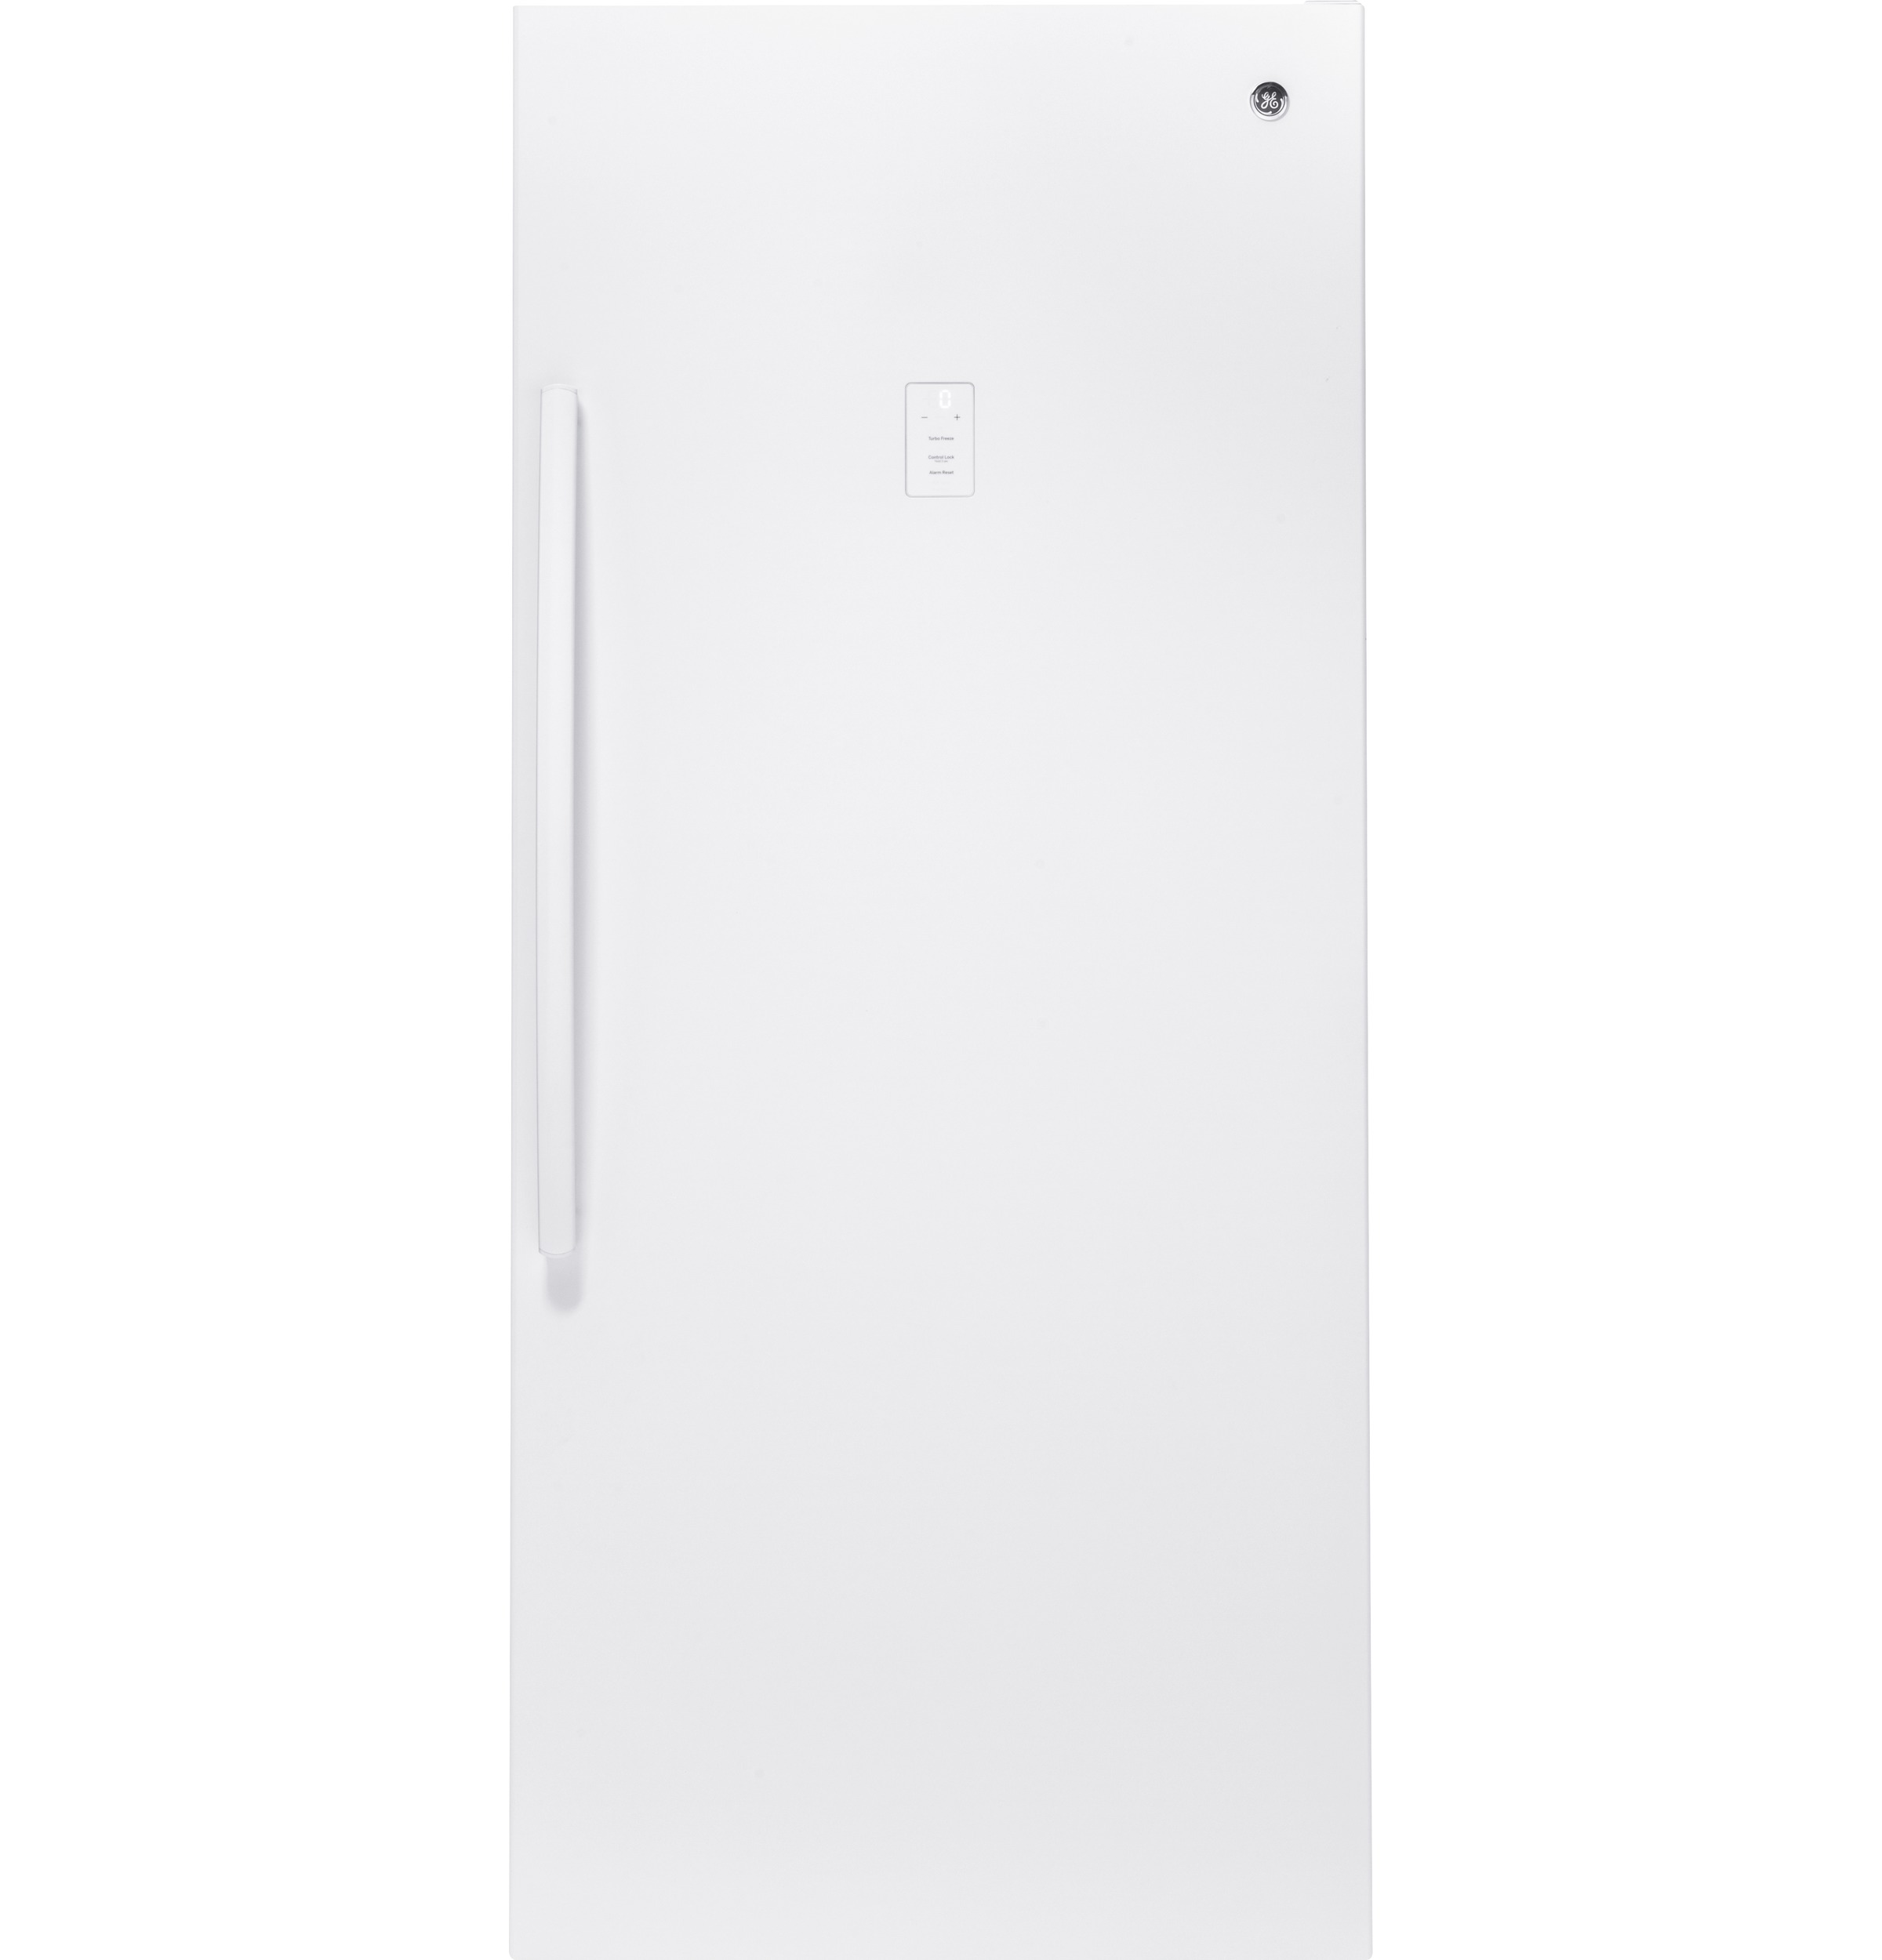 Model: FUF21DLRWW | GE® 21.3 Cu. Ft. Frost-Free Upright Freezer